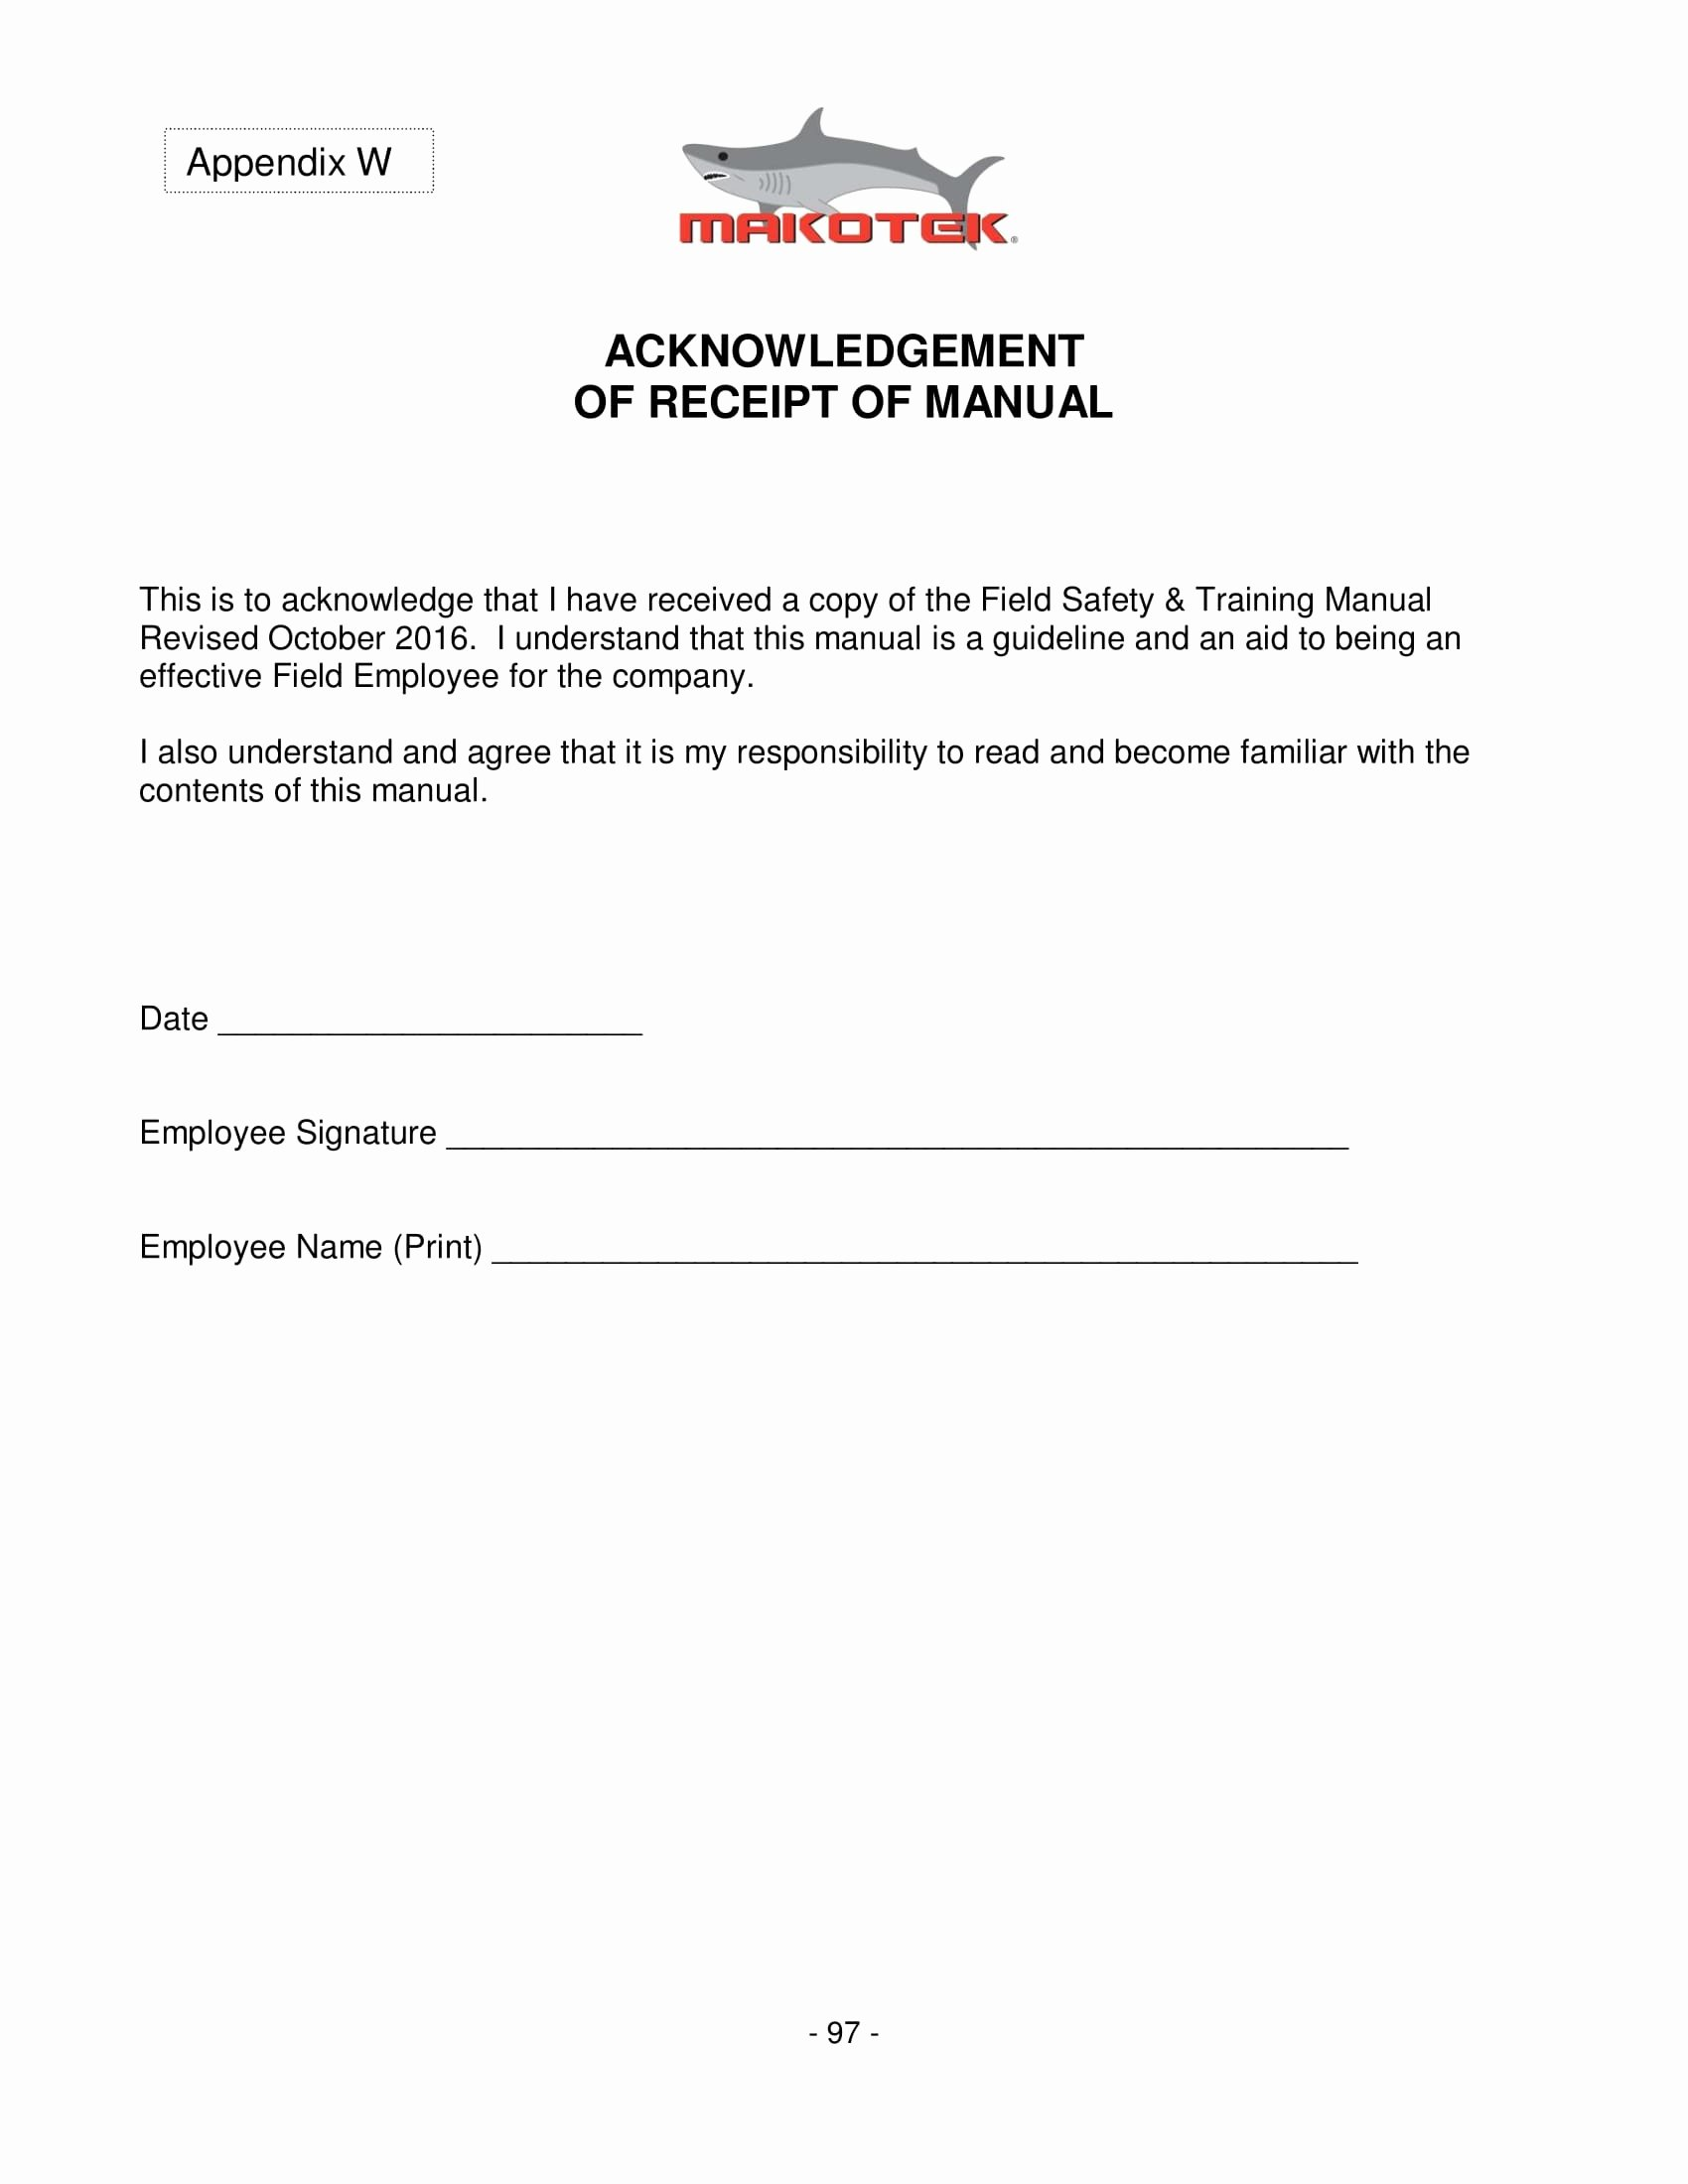 Acknowledgement Of Receipt form Template Awesome Free 5 Employee Manual Acknowledgment forms Doc